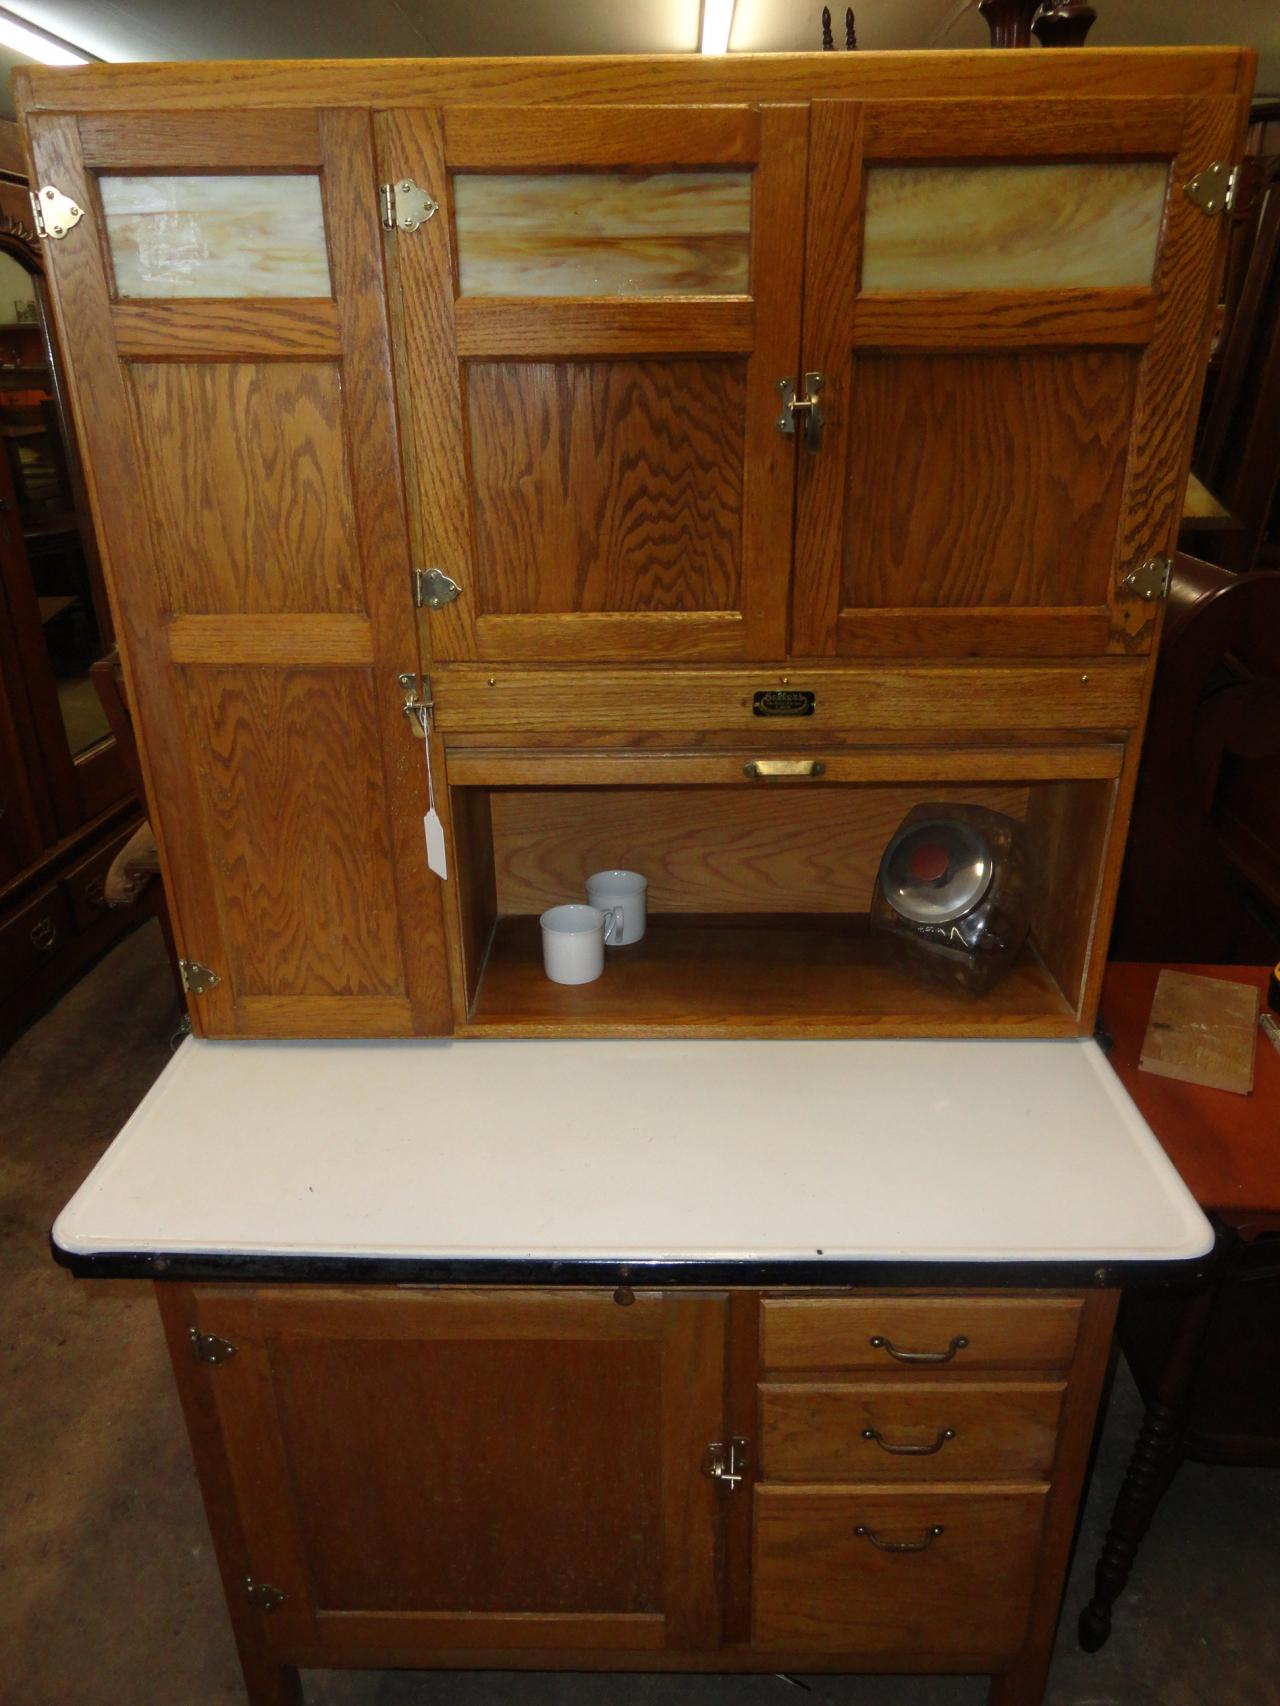 Z's Antiques & Restorations - Hoosier/Baker's Cabinets Including ...